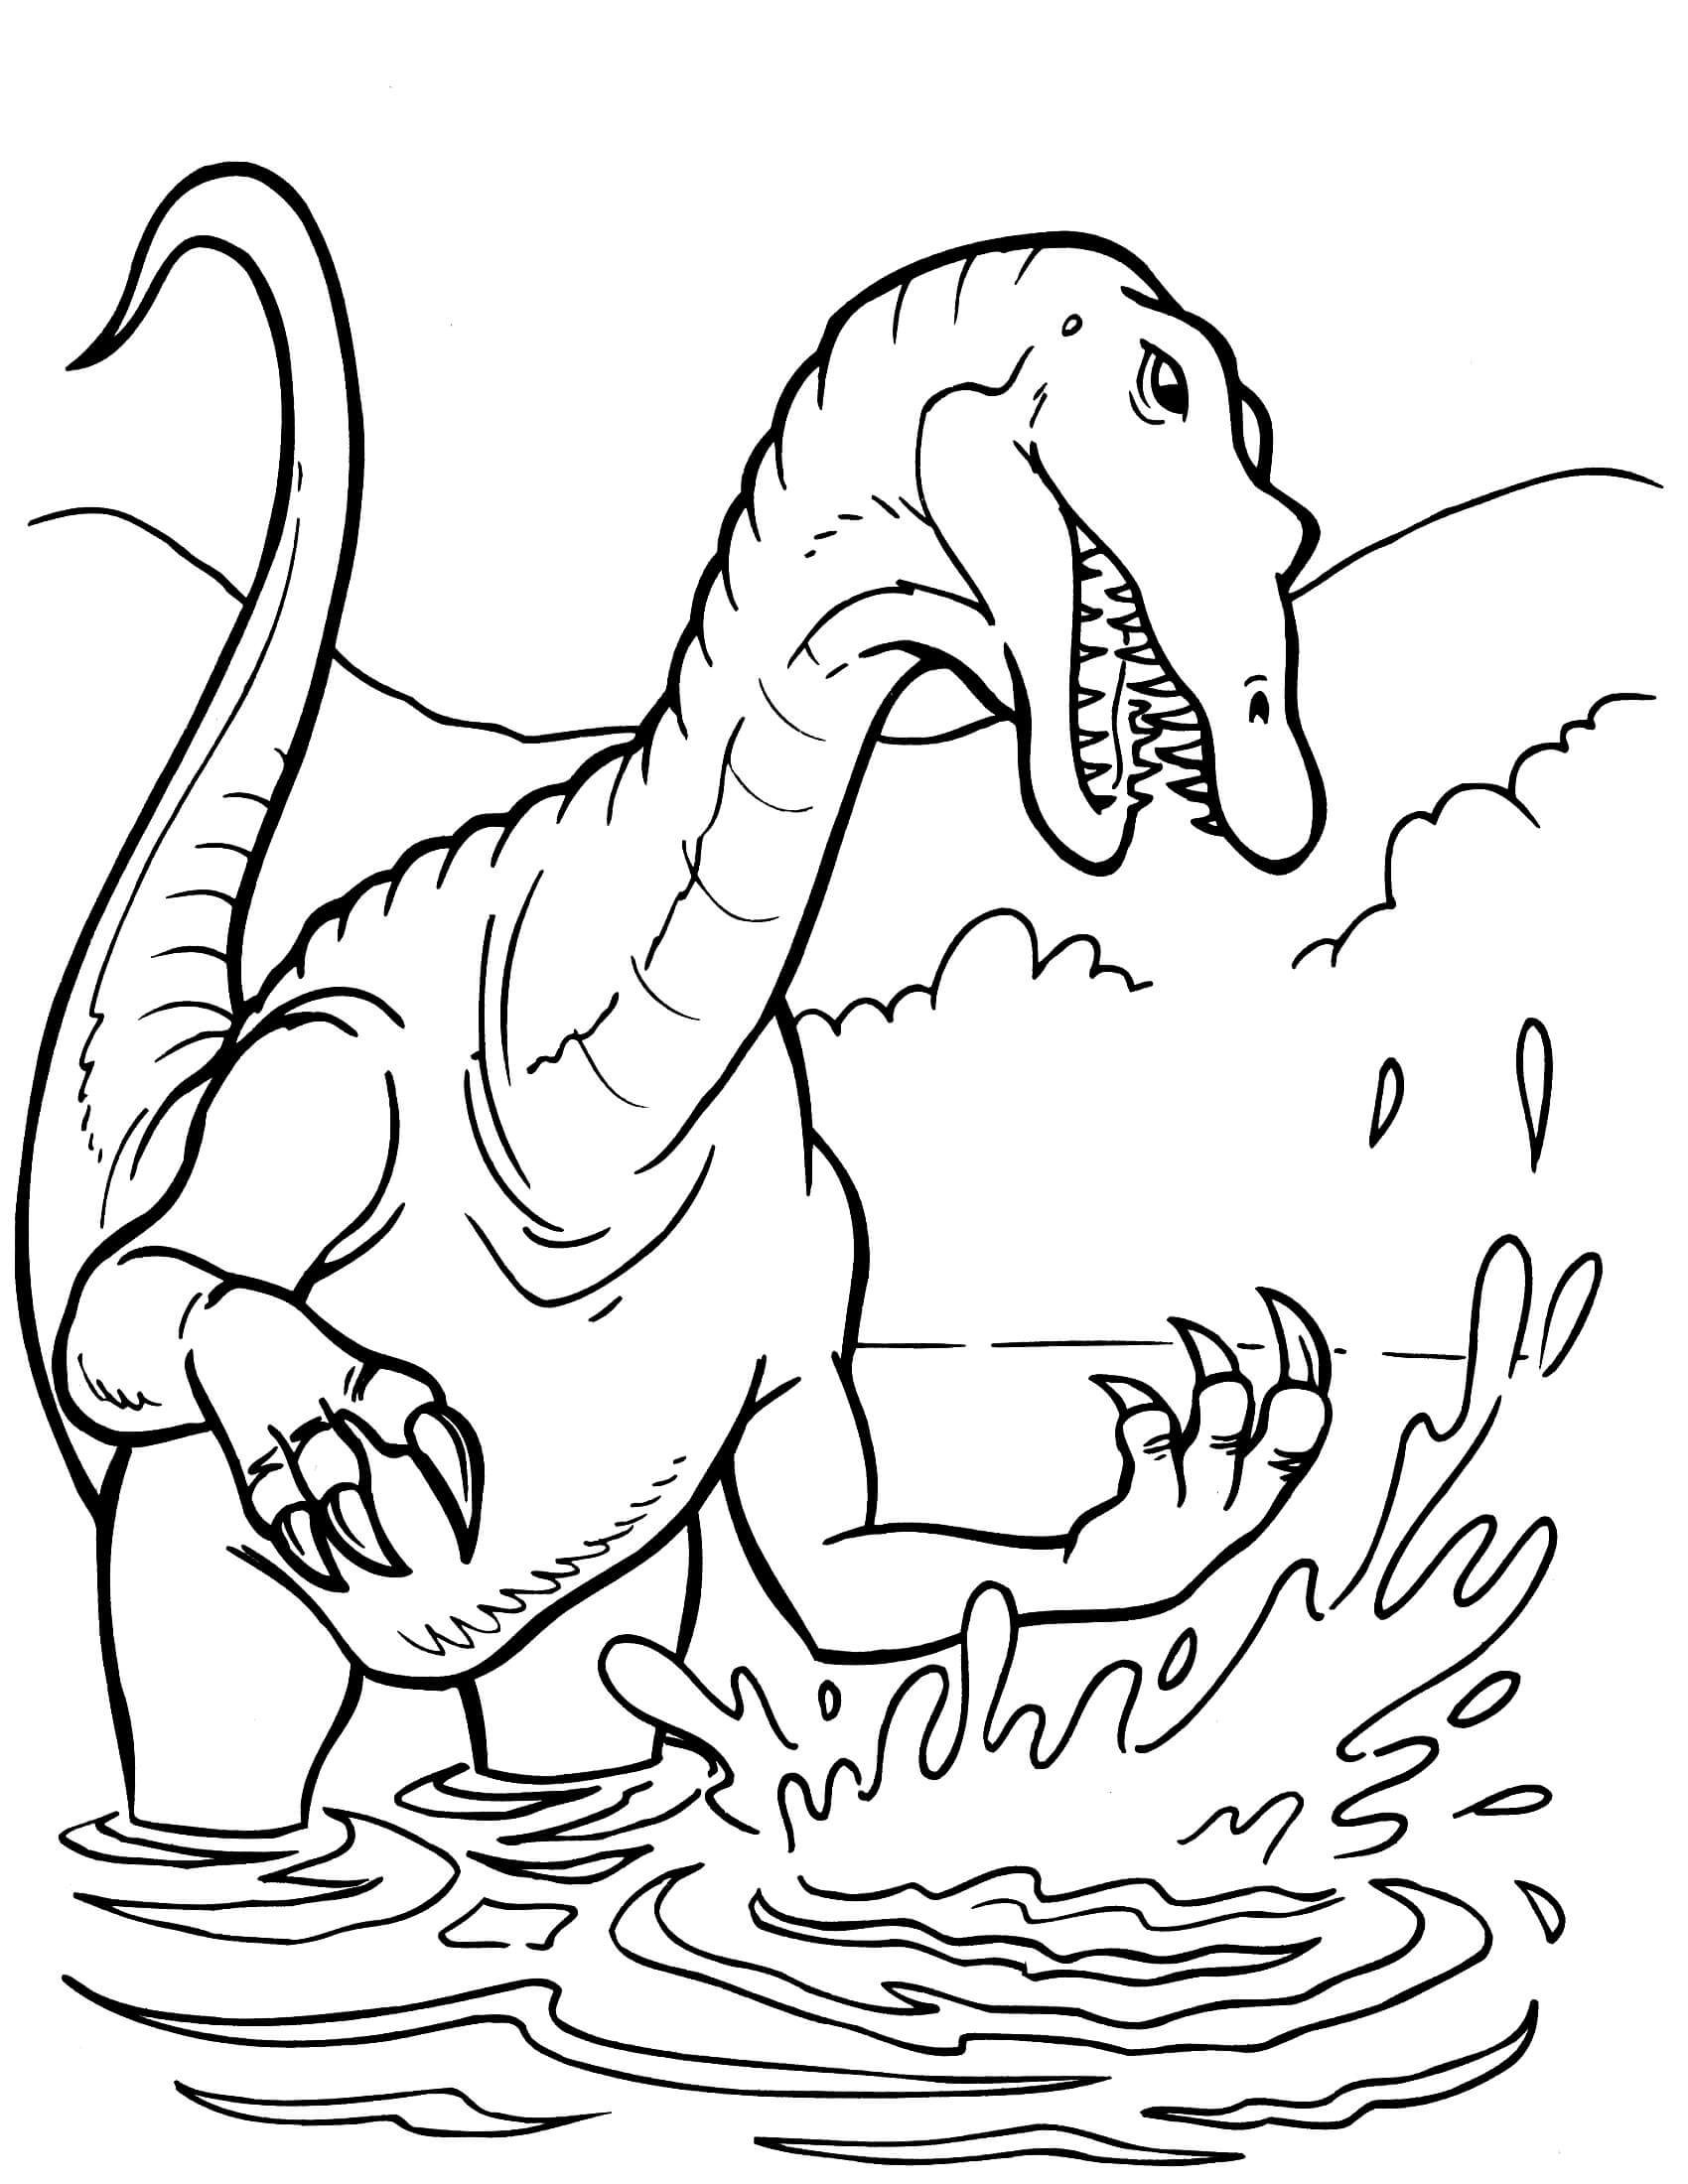 dinosaurs color pages dinosaur coloring pages for kids pages color dinosaurs